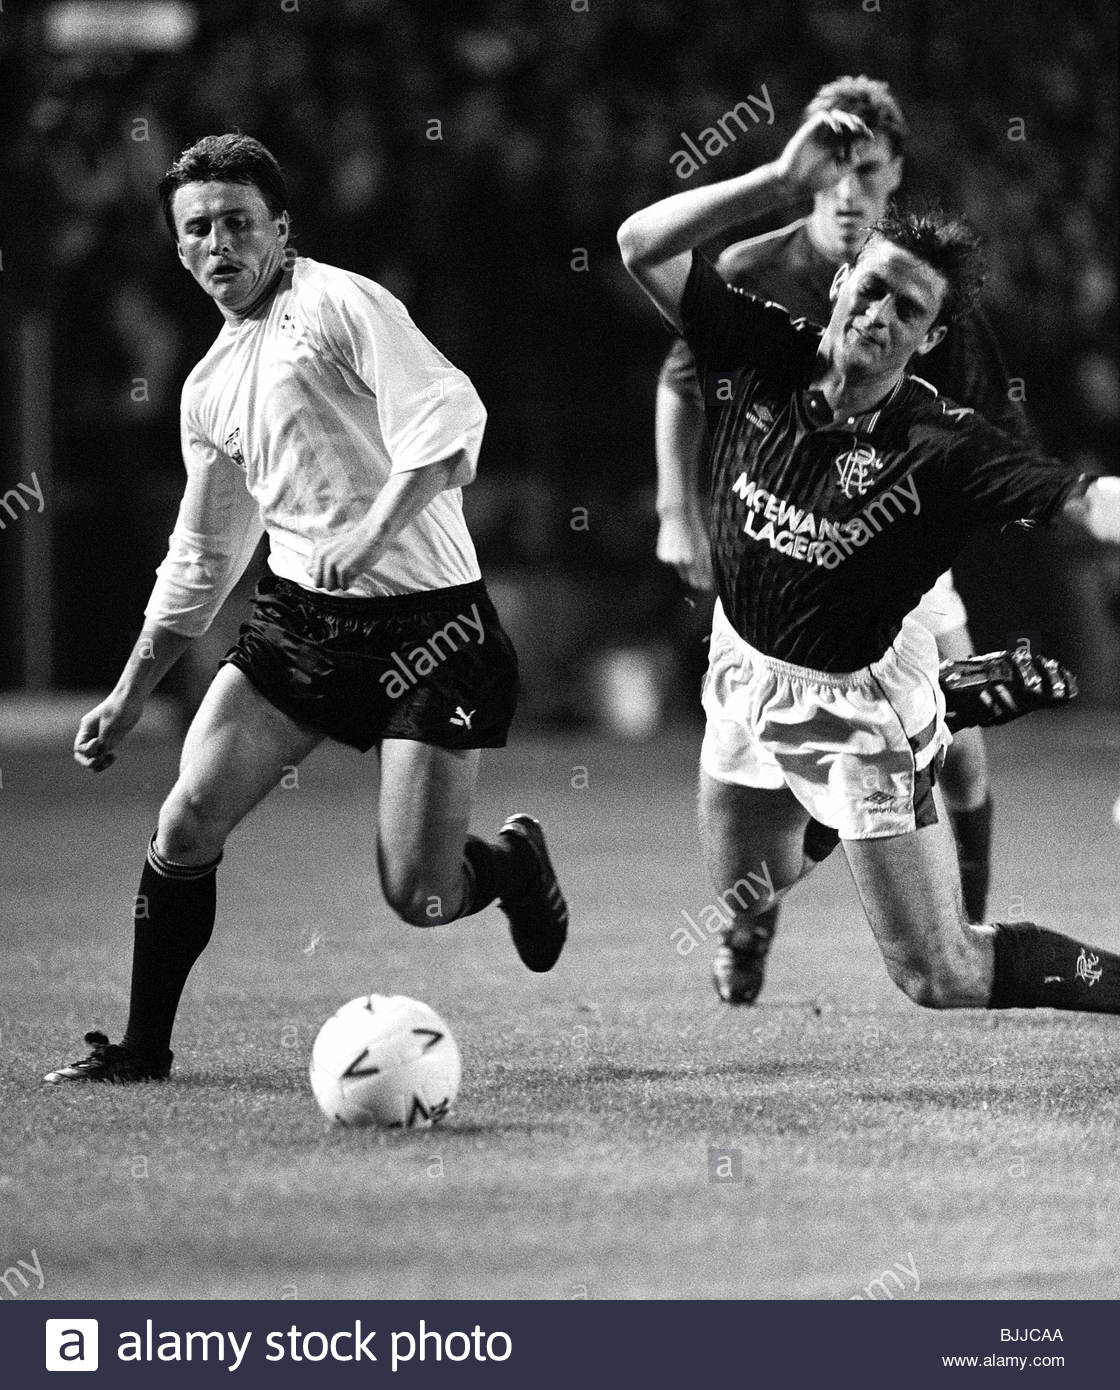 07/09/88 UEFA CUP FIRST ROUND RANGERS V KATOWICE (1-0) IBROX - GLASGOW Rangers' Kevin Drinkell (right) falls - Stock Image